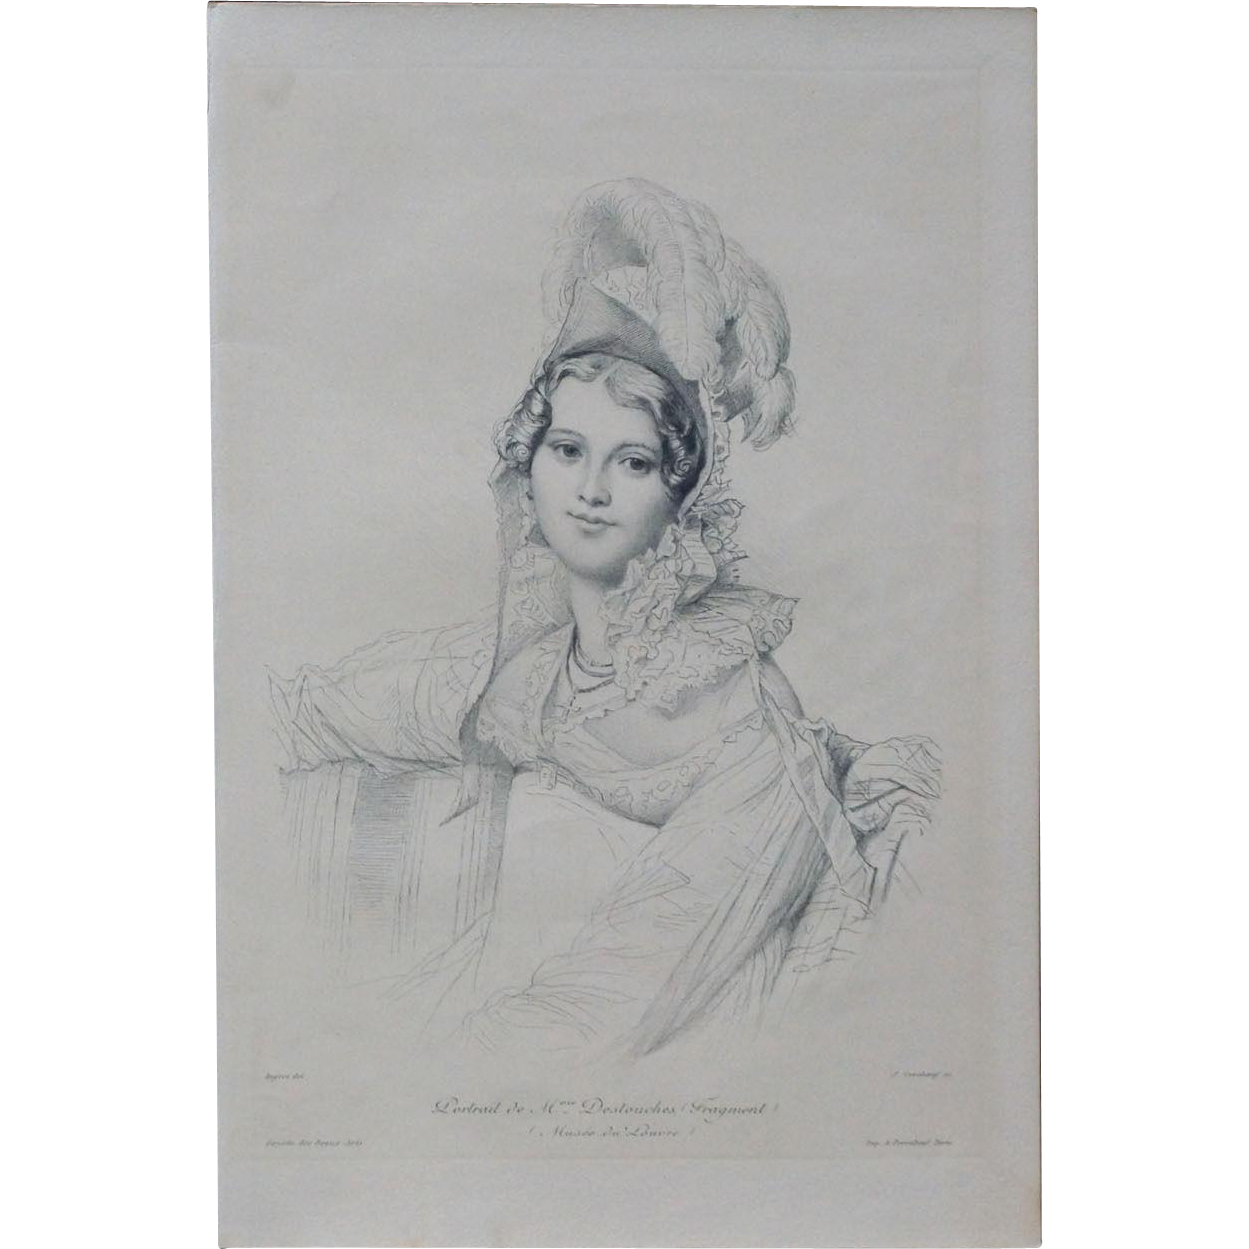 Sale french burin engraving. Ingres drawing portrait stock